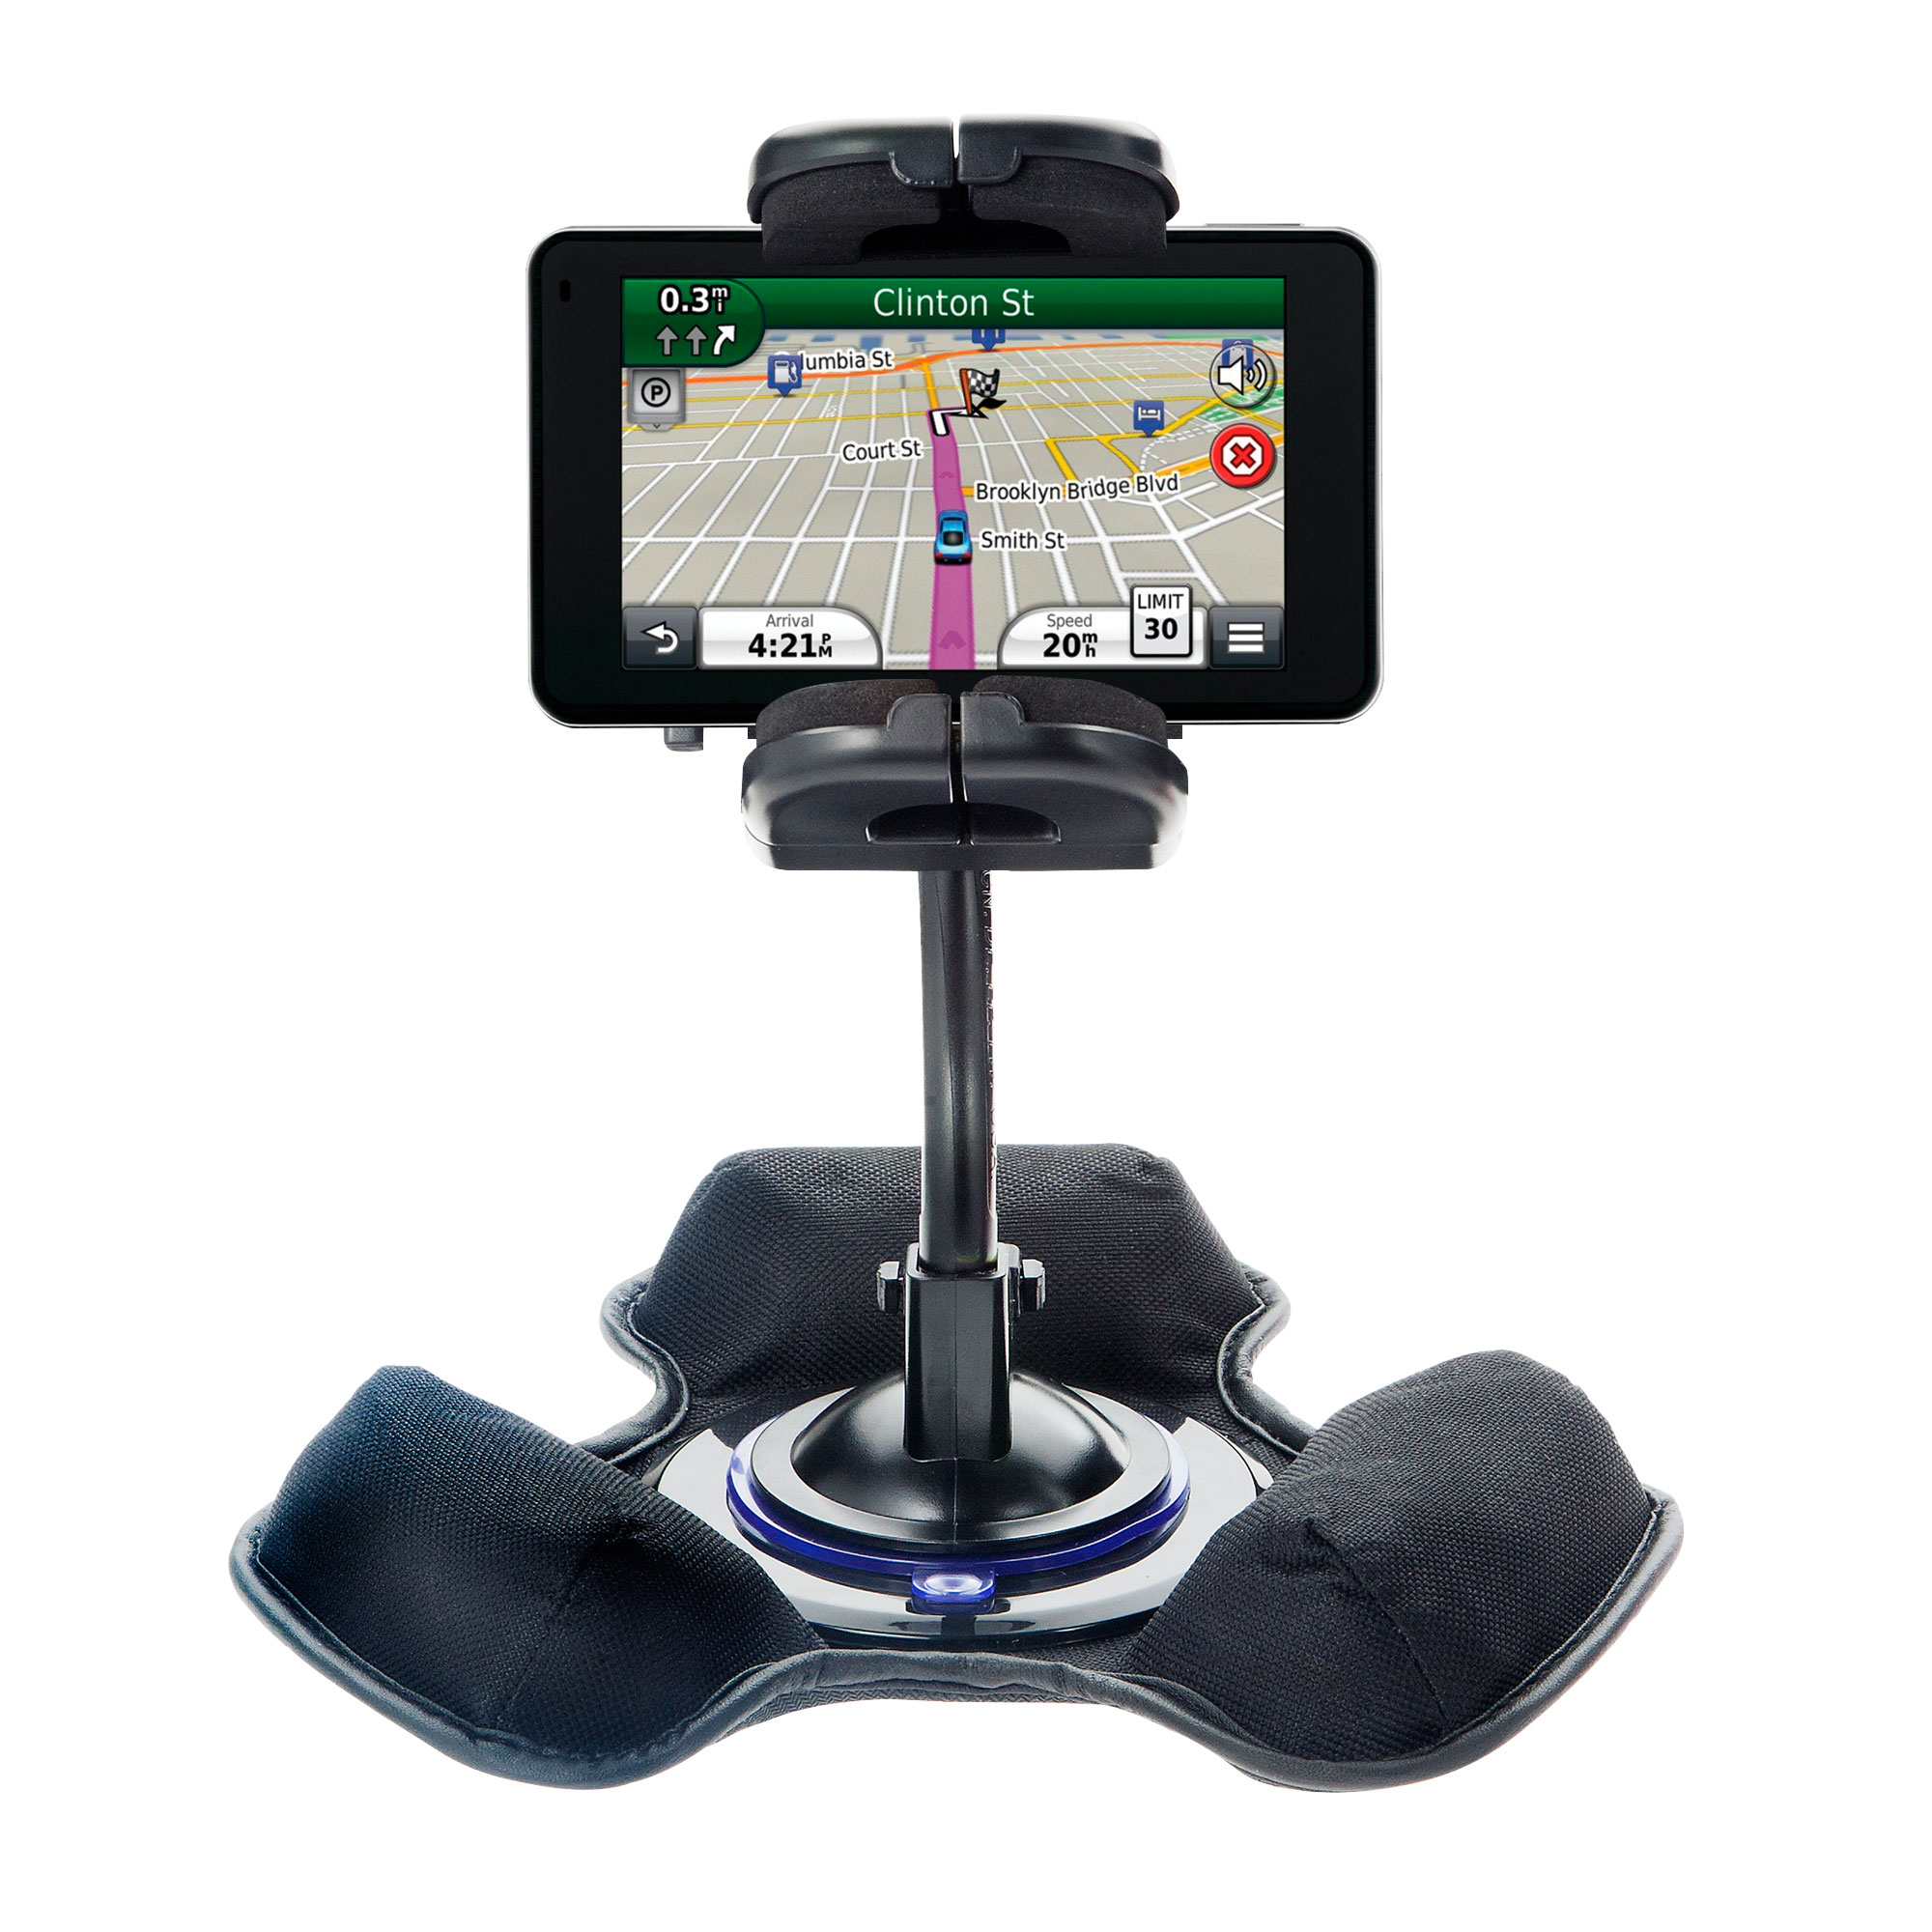 Dash and Windshield Holder compatible with the Garmin Nuvi 3450 3450LM